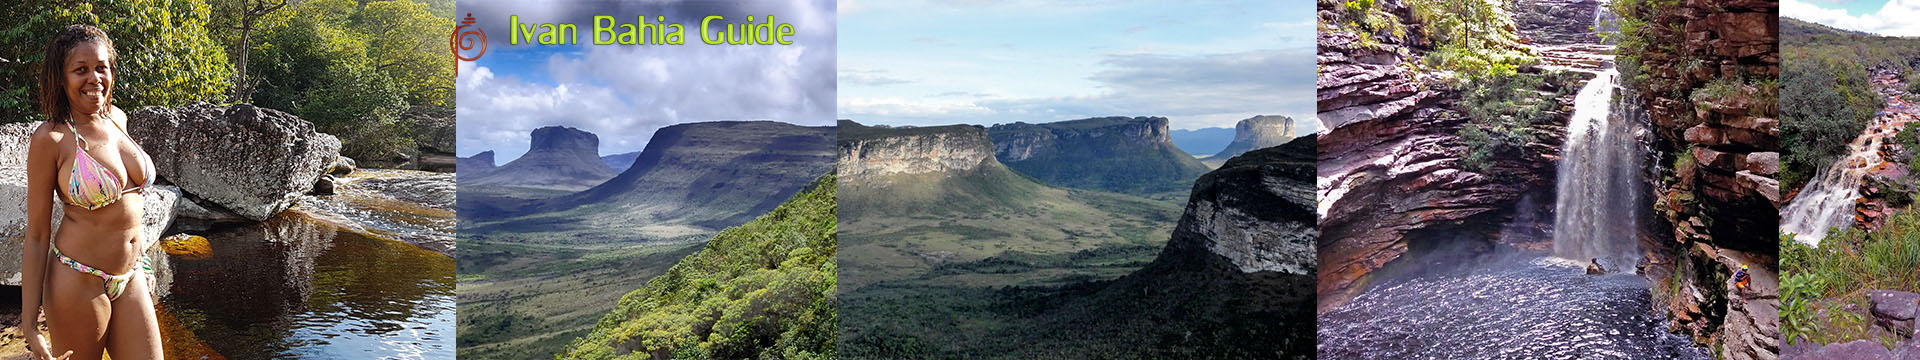 Ivan Bahia tour-guide / Chapada Diamantina National Park (aka 'the Brazilian Grand Canyon') mountain views, Canto das Aguas Hotel